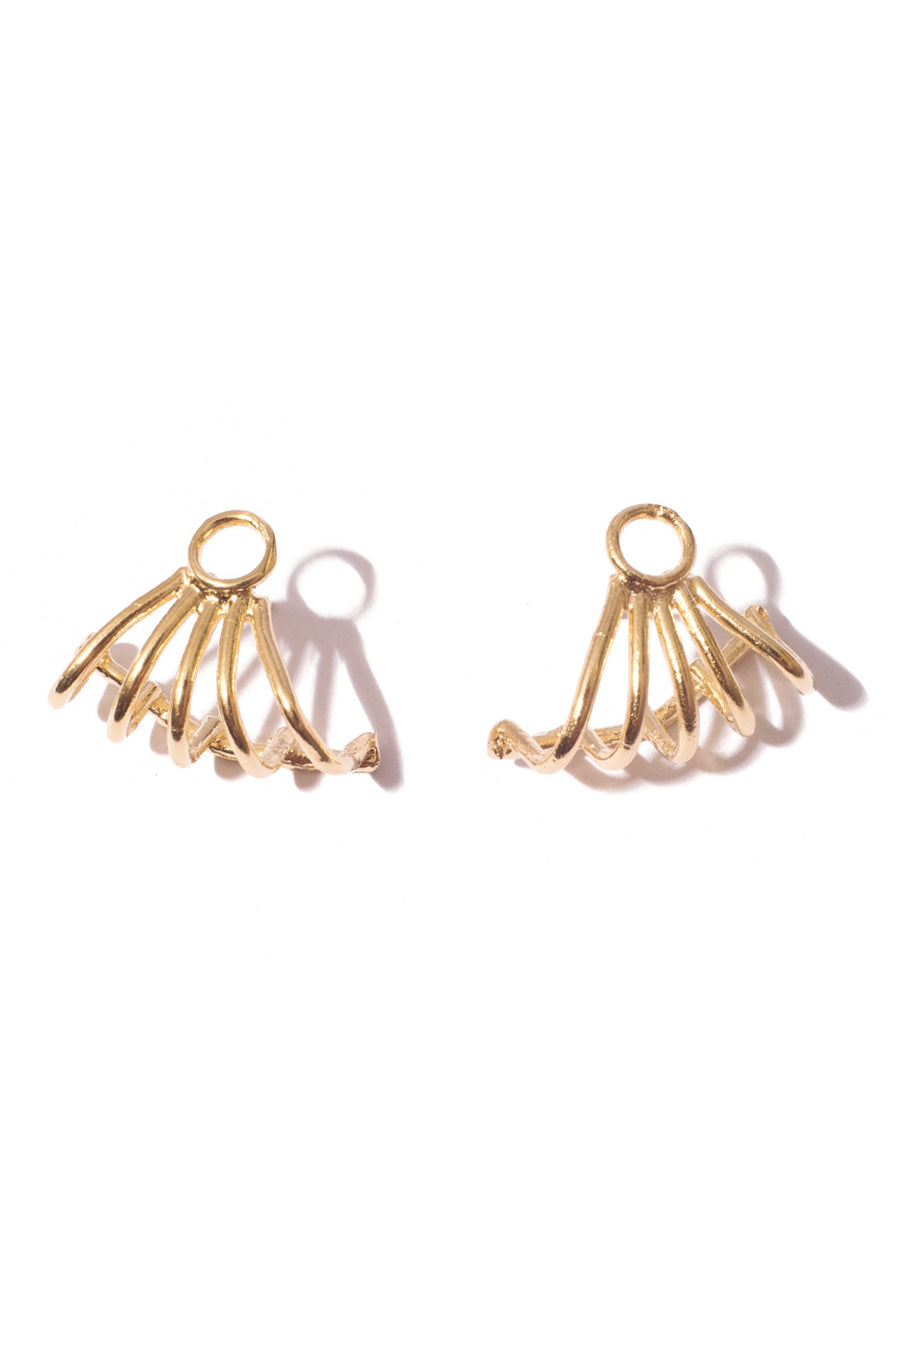 Inferno earring in 14k yellow gold. Earring that tucks underneath and hugs the lobe of the ear. Handmade by local jewelry designer, Nina Berenato, in Austin, Texas.